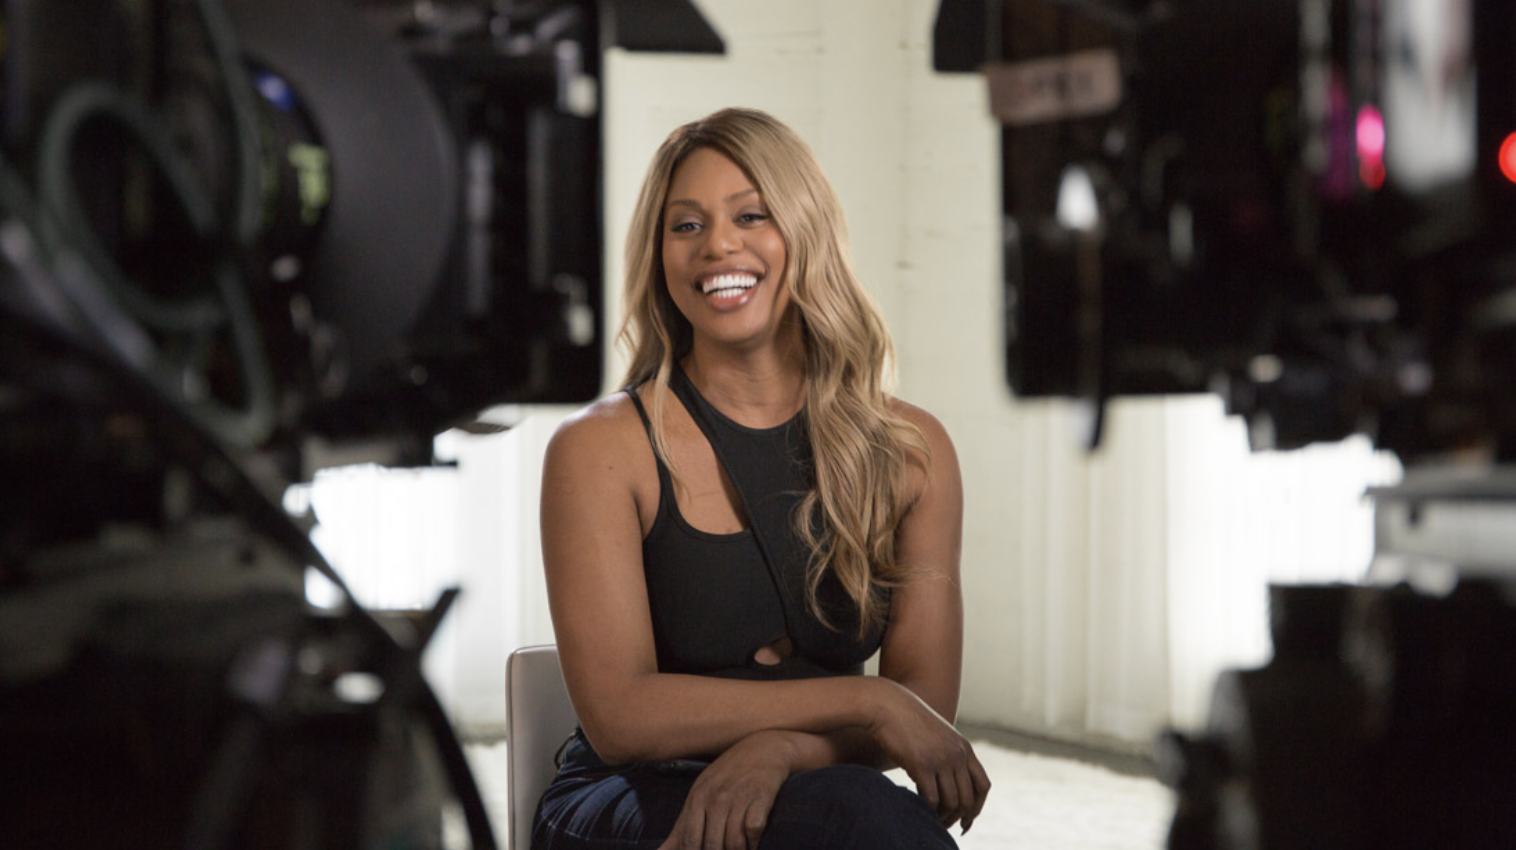 Laverne Cox is interviewed behind two cameras.